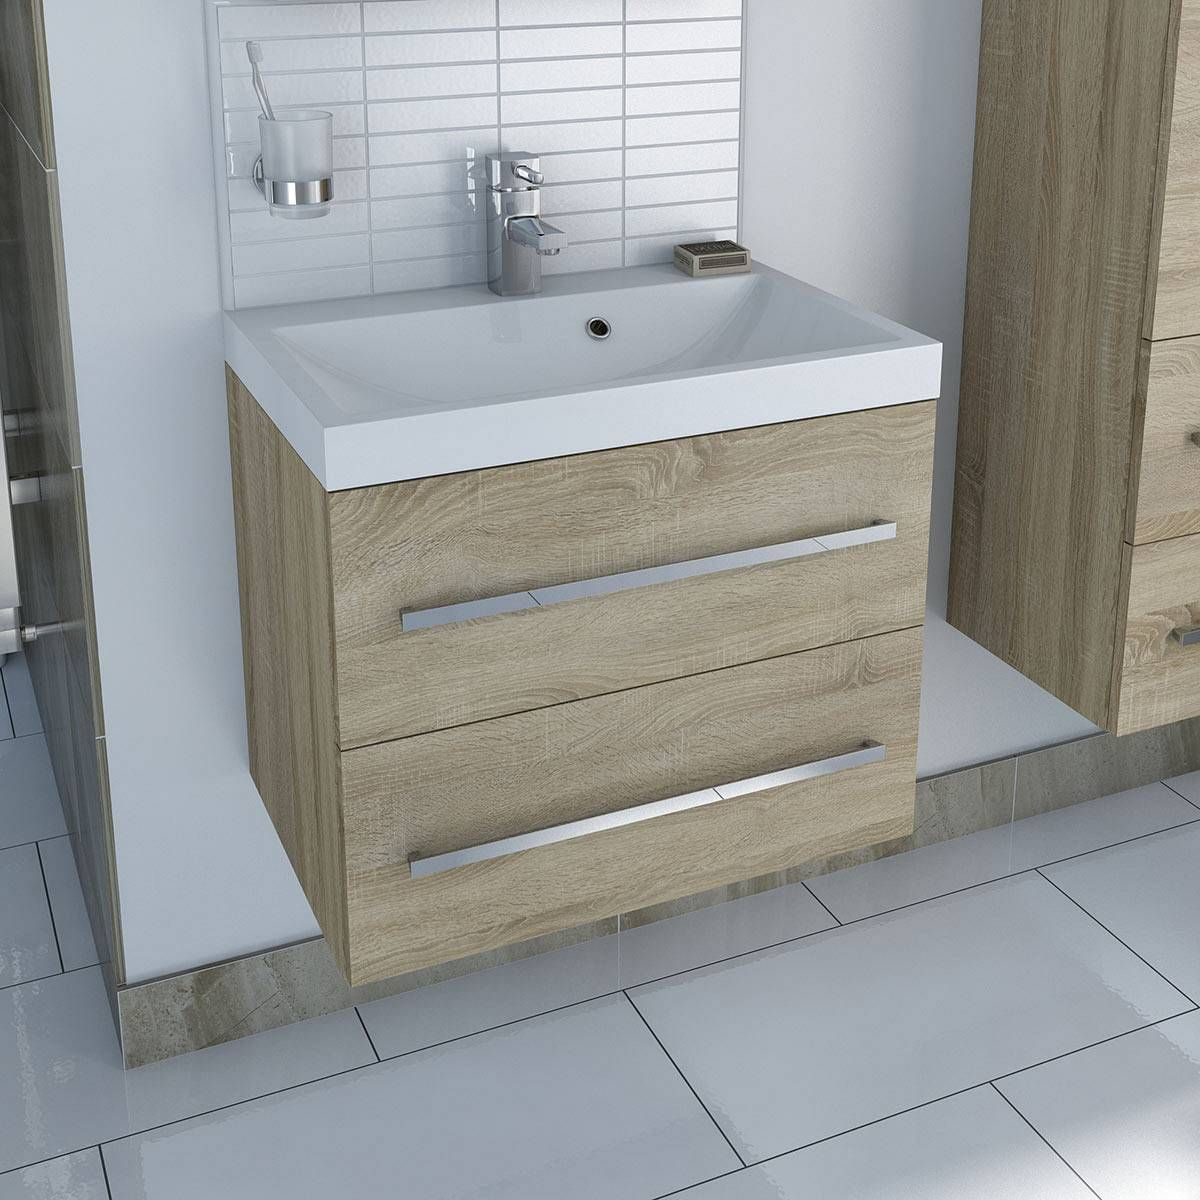 Bathroom Accessories Victoria Plumb drift sawn oak 2 drawer wall hung unit & inset basin - was 519 now